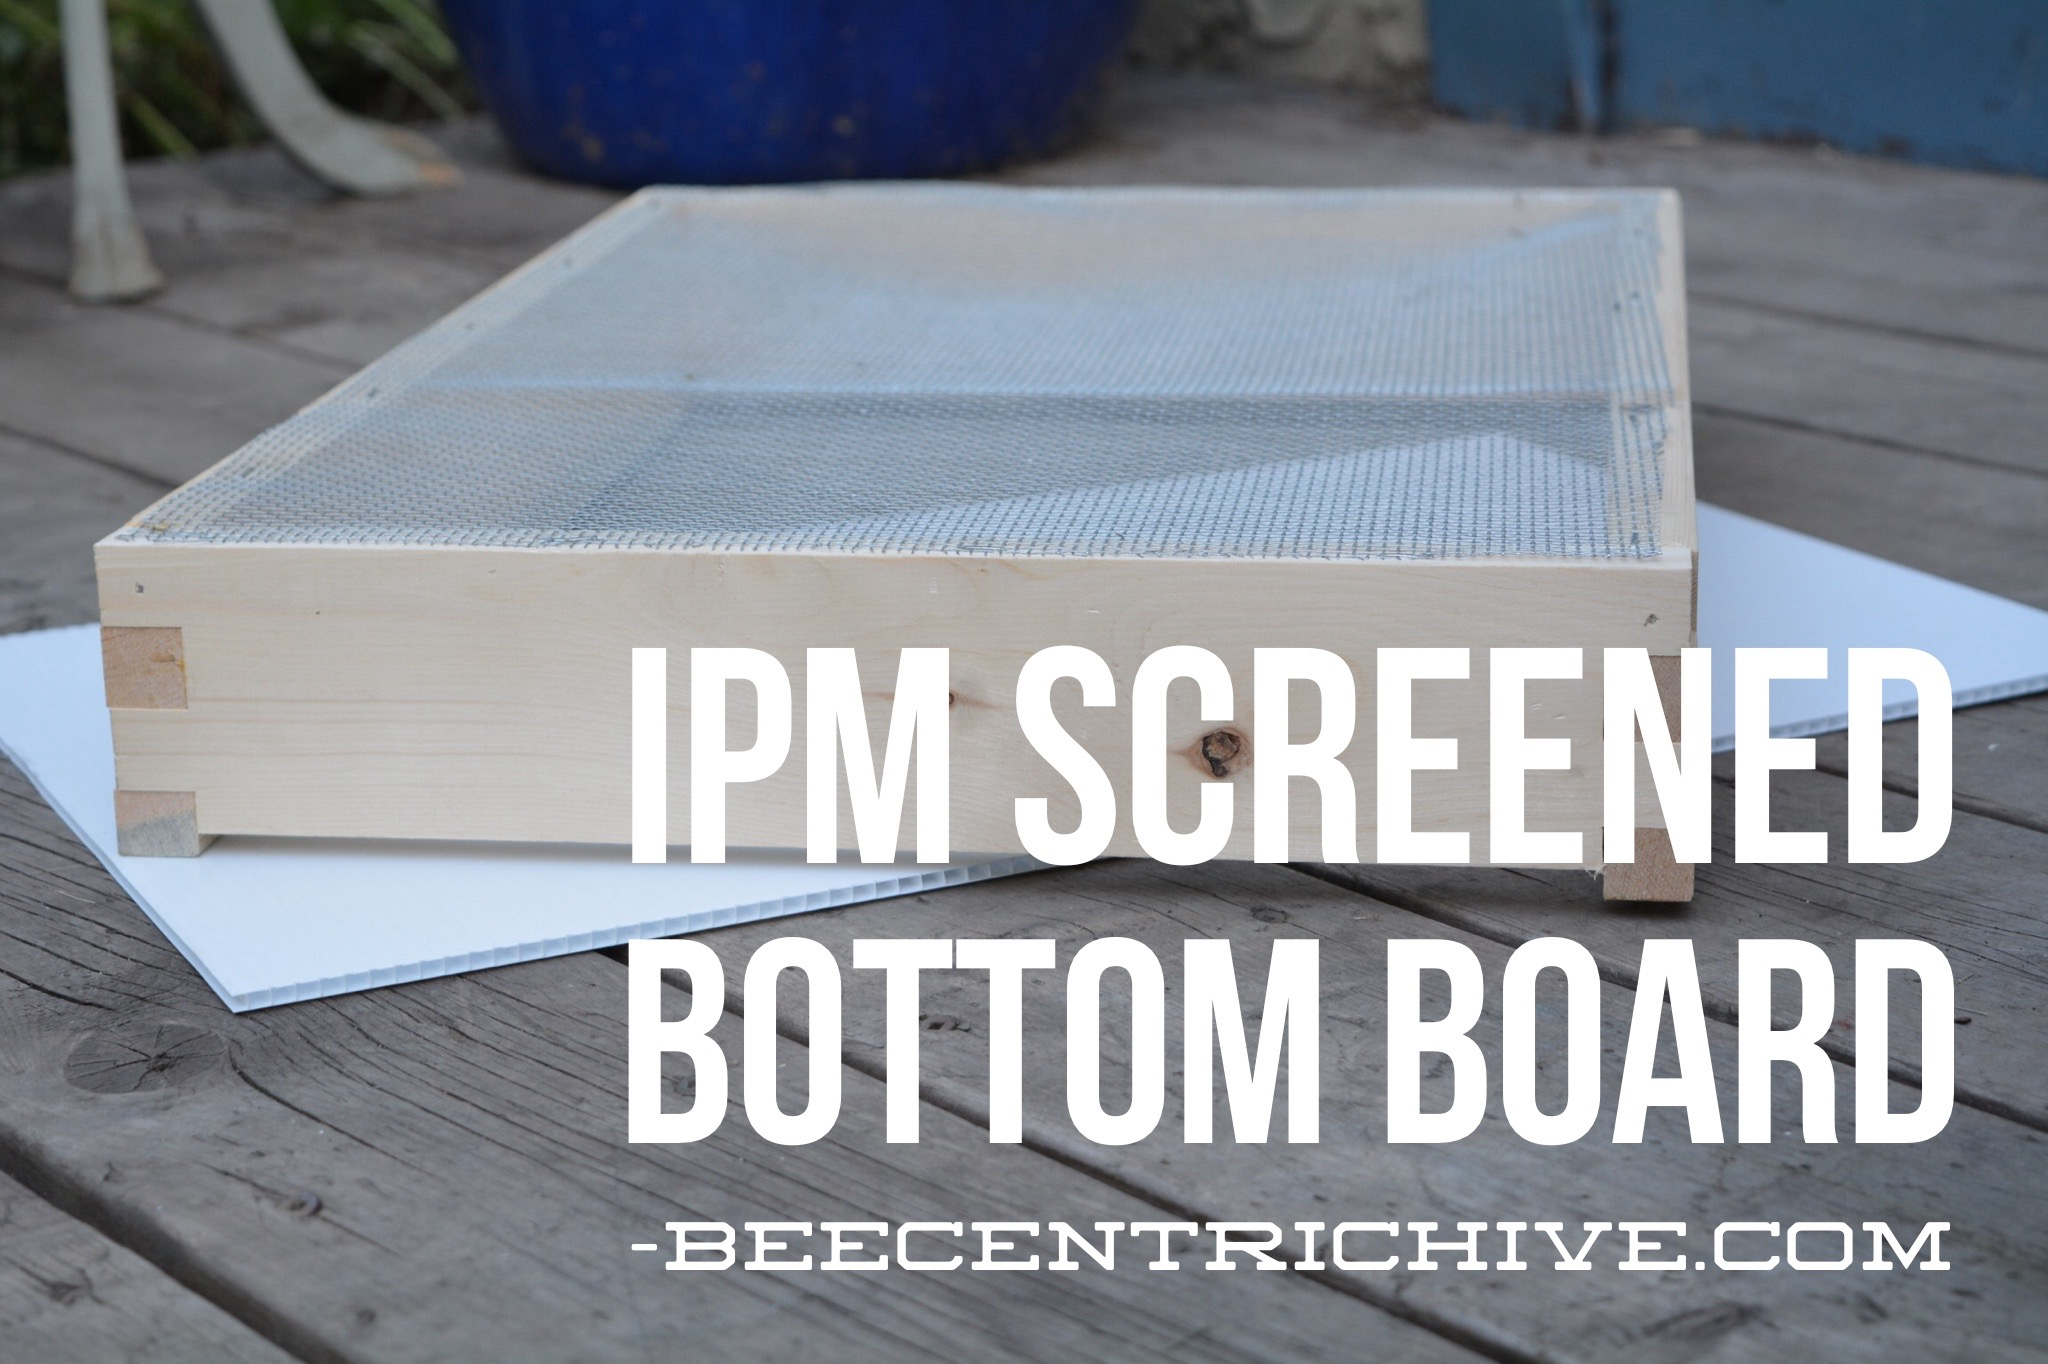 How to make a moisture quilt for a langstroth hive honey - Beecentric Hive Ipm Screened Bottom Board